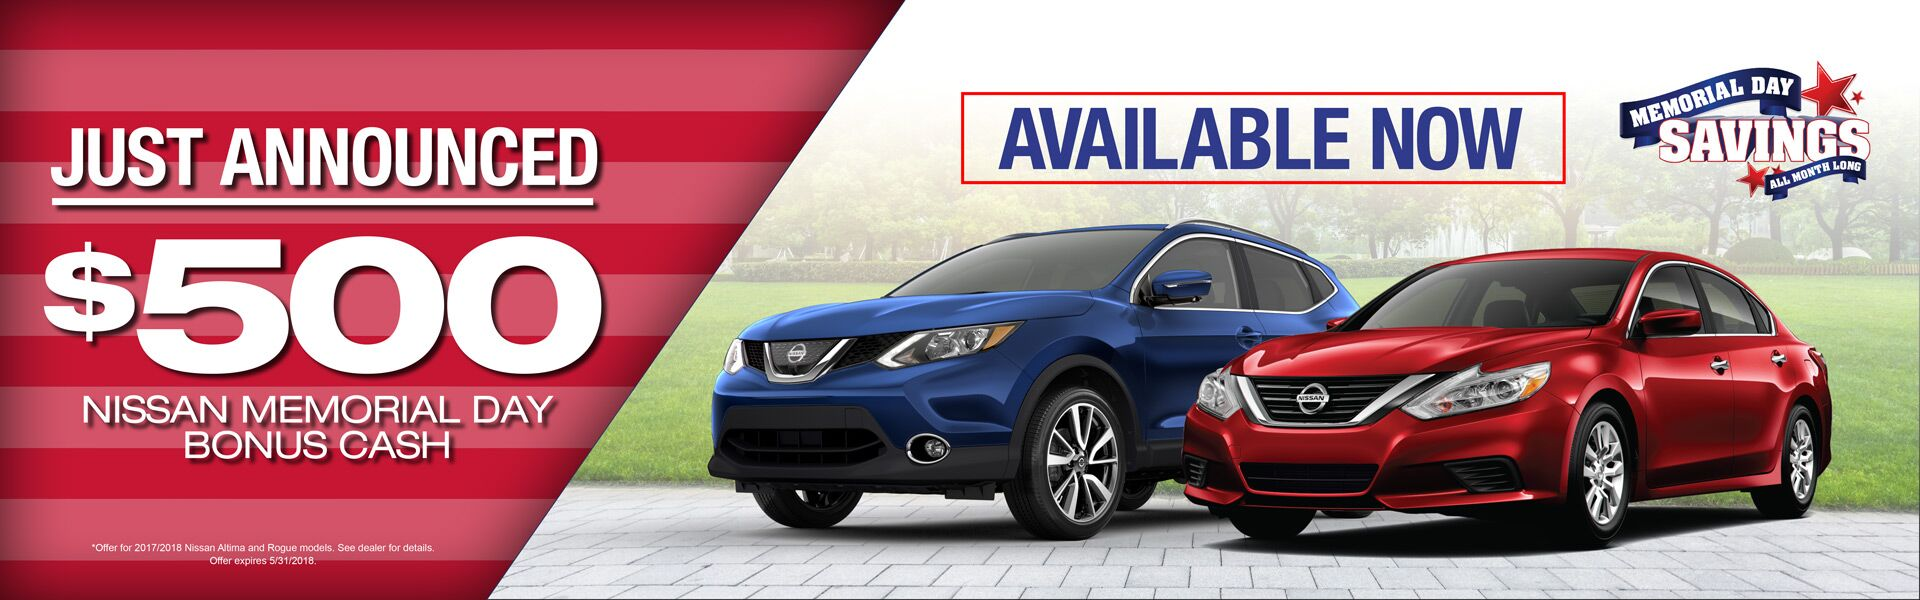 Cars for Sale | Used Cars For Sale | Palm Springs Nissan near Indio